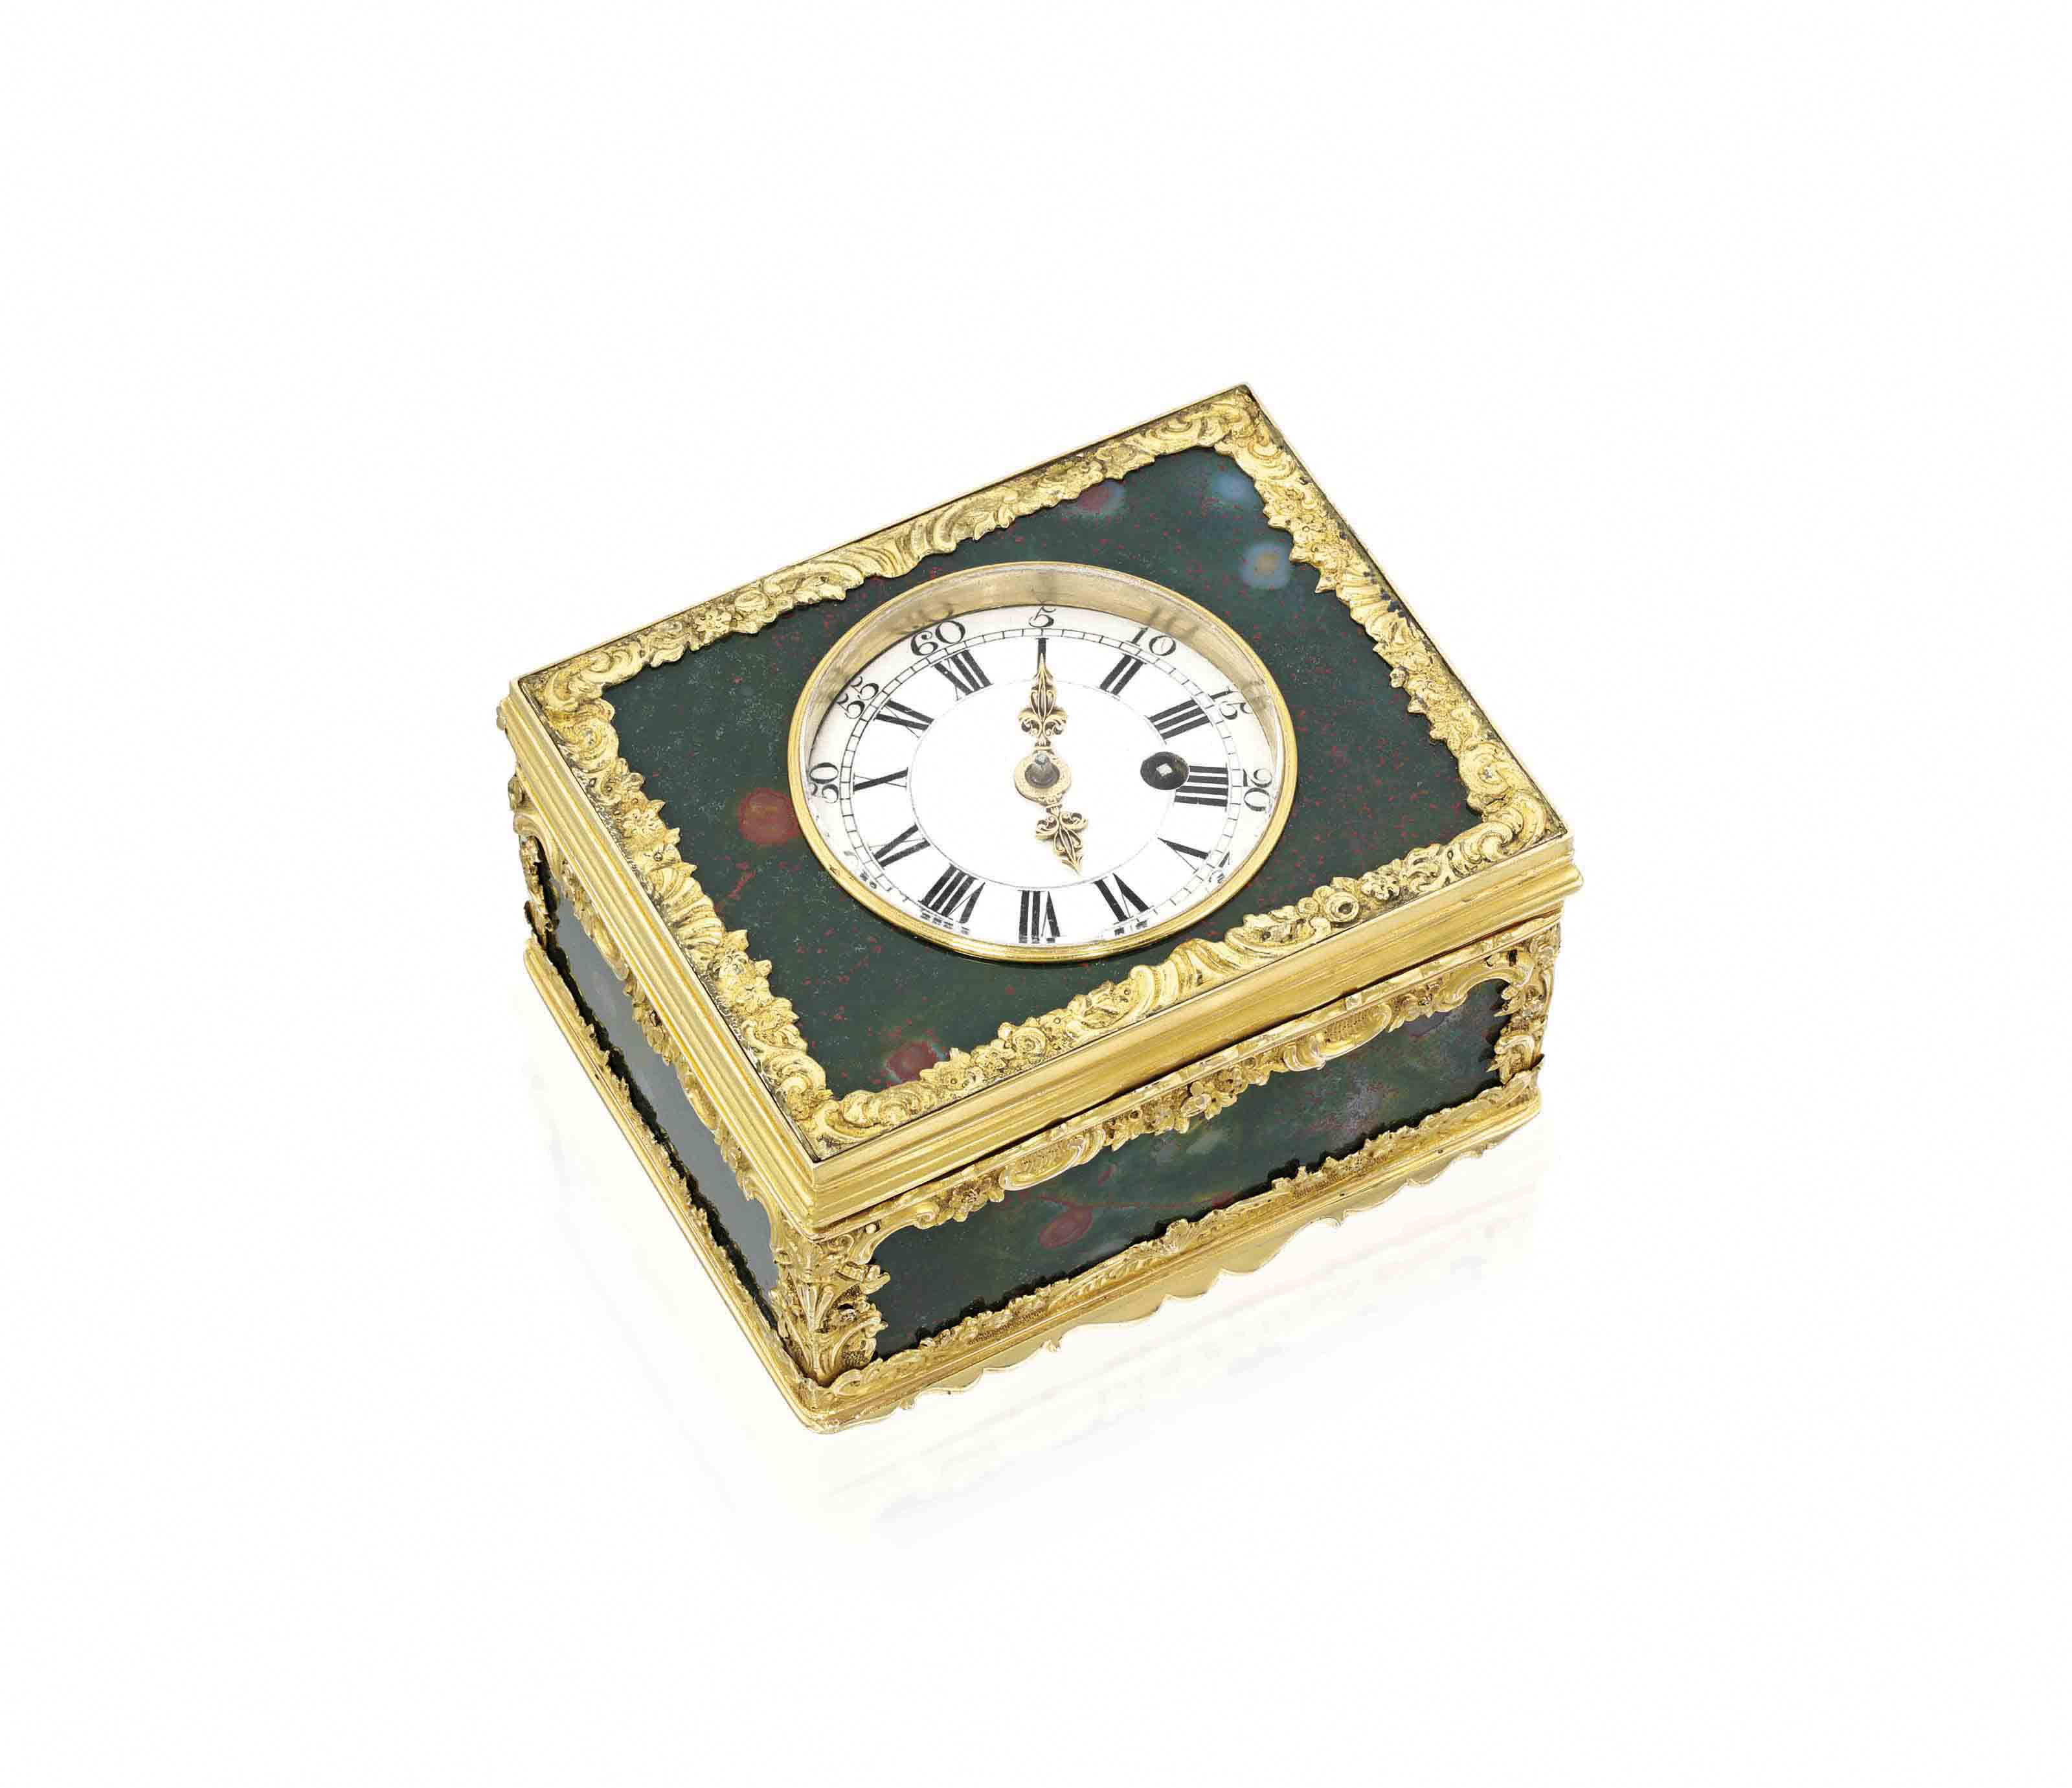 A GEORGE II GOLD-MOUNTED HARDSTONE SNUFF-BOX SET WITH A WATCH